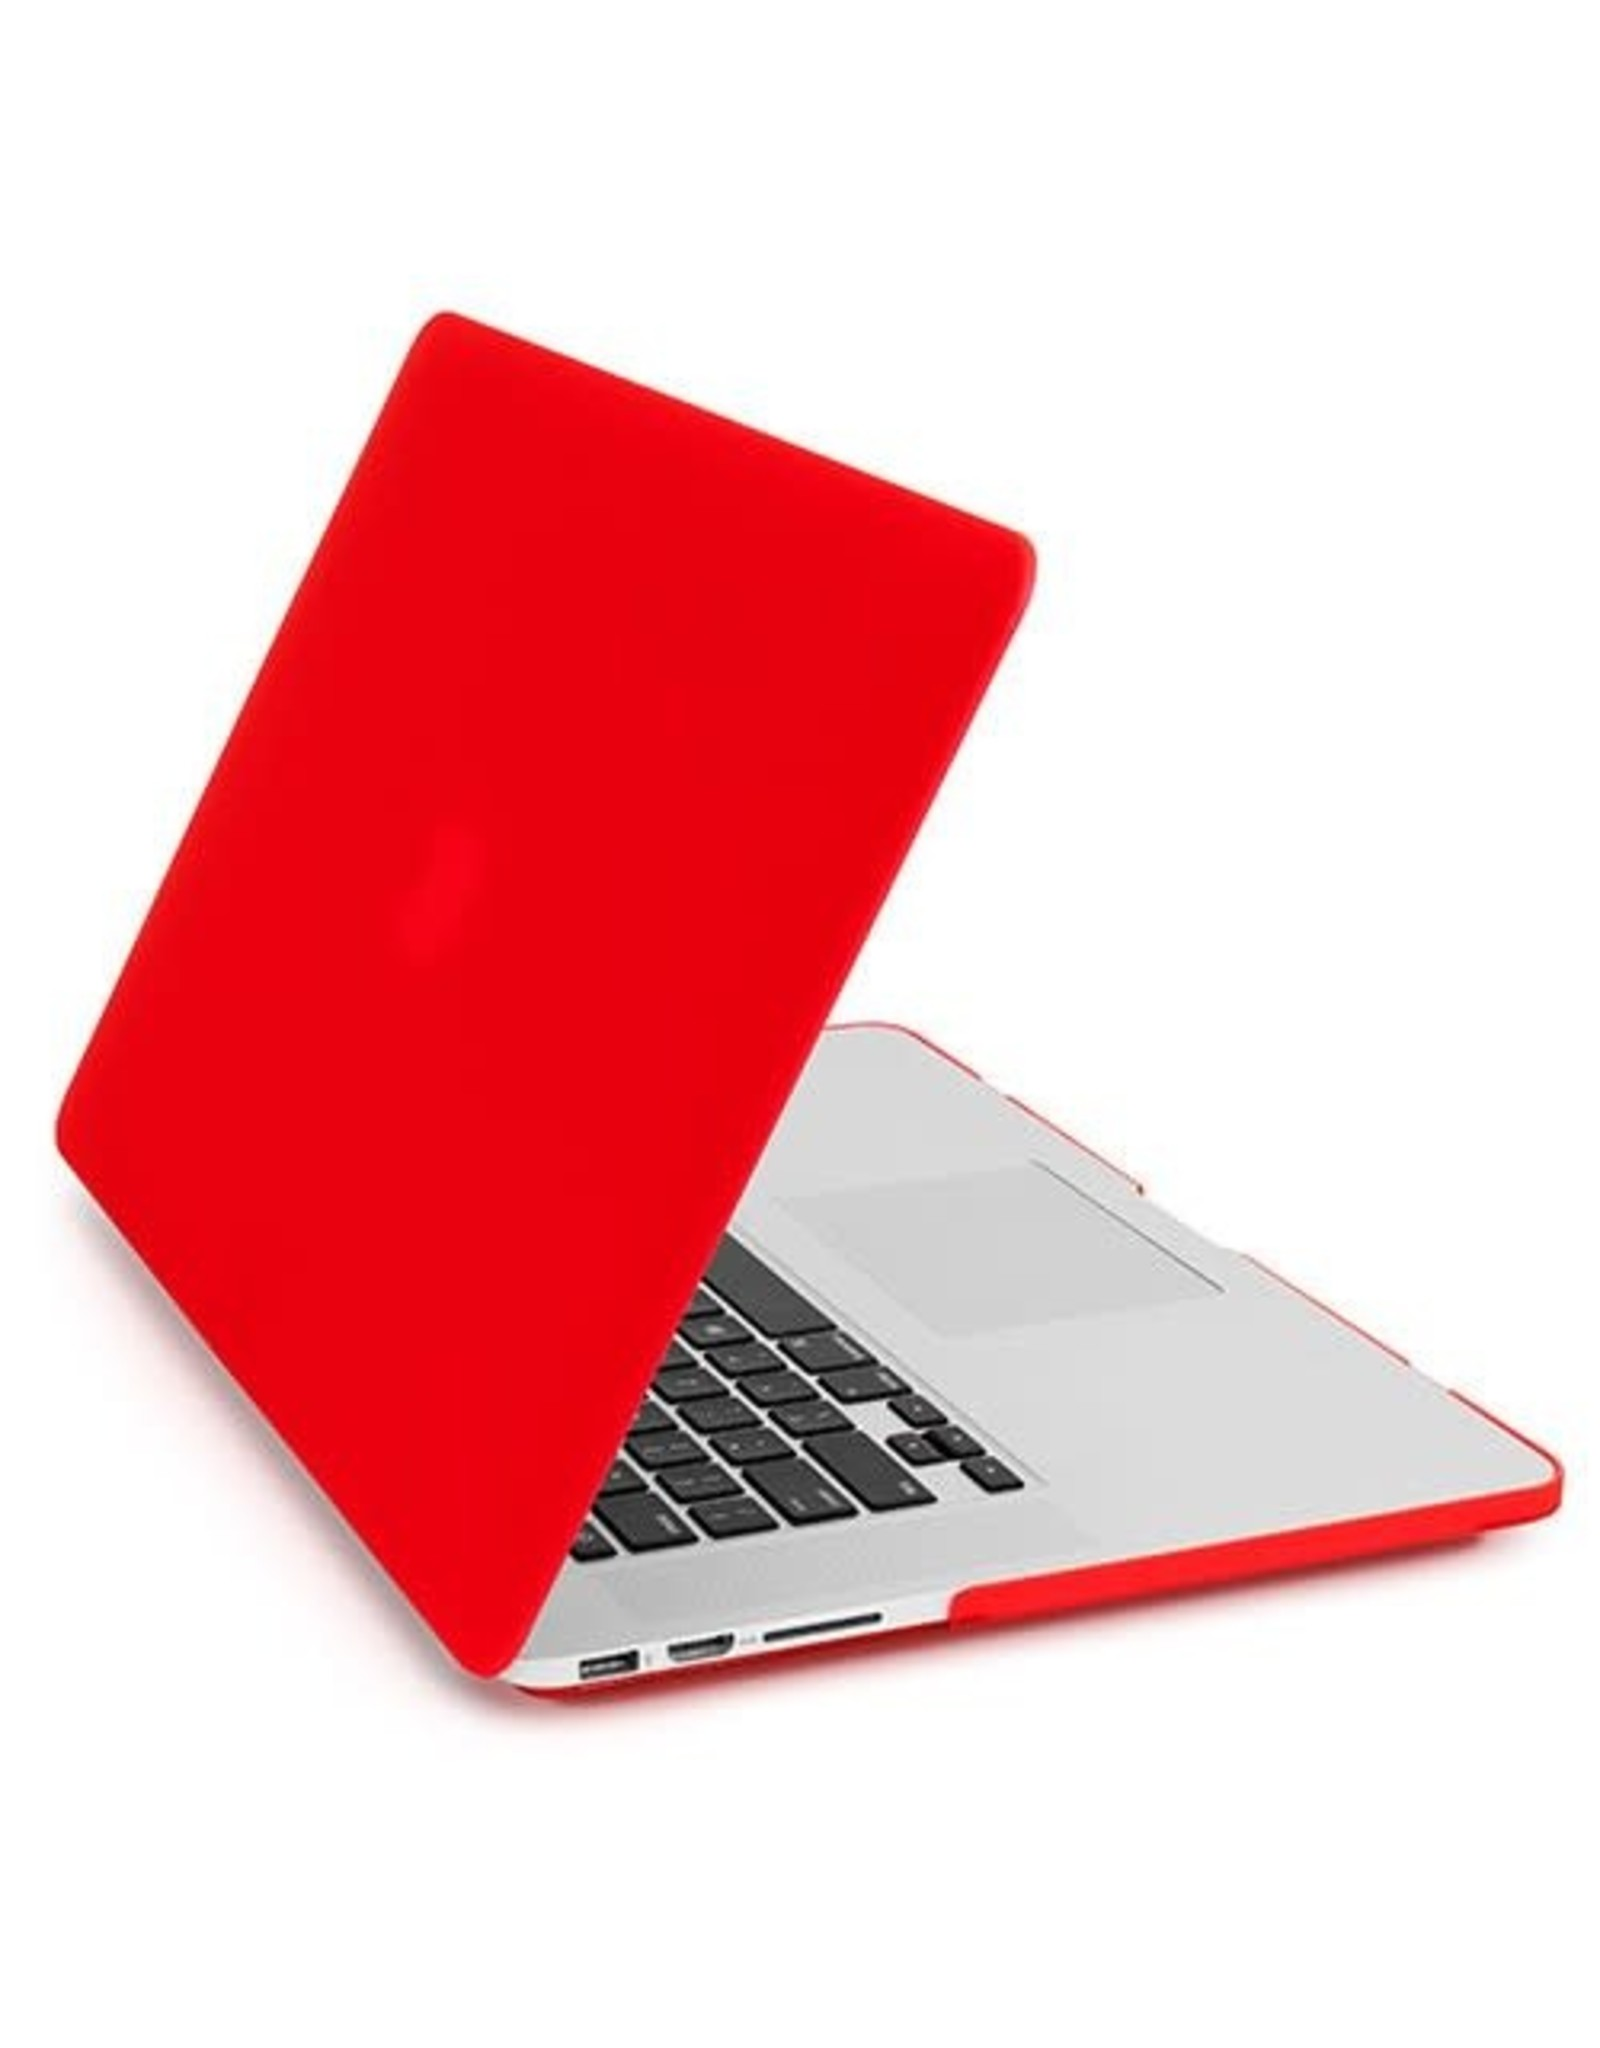 OWC NewerTech NuGuard Snap-On Laptop Cover for MacBook Pro Retina 15 - RED EOL